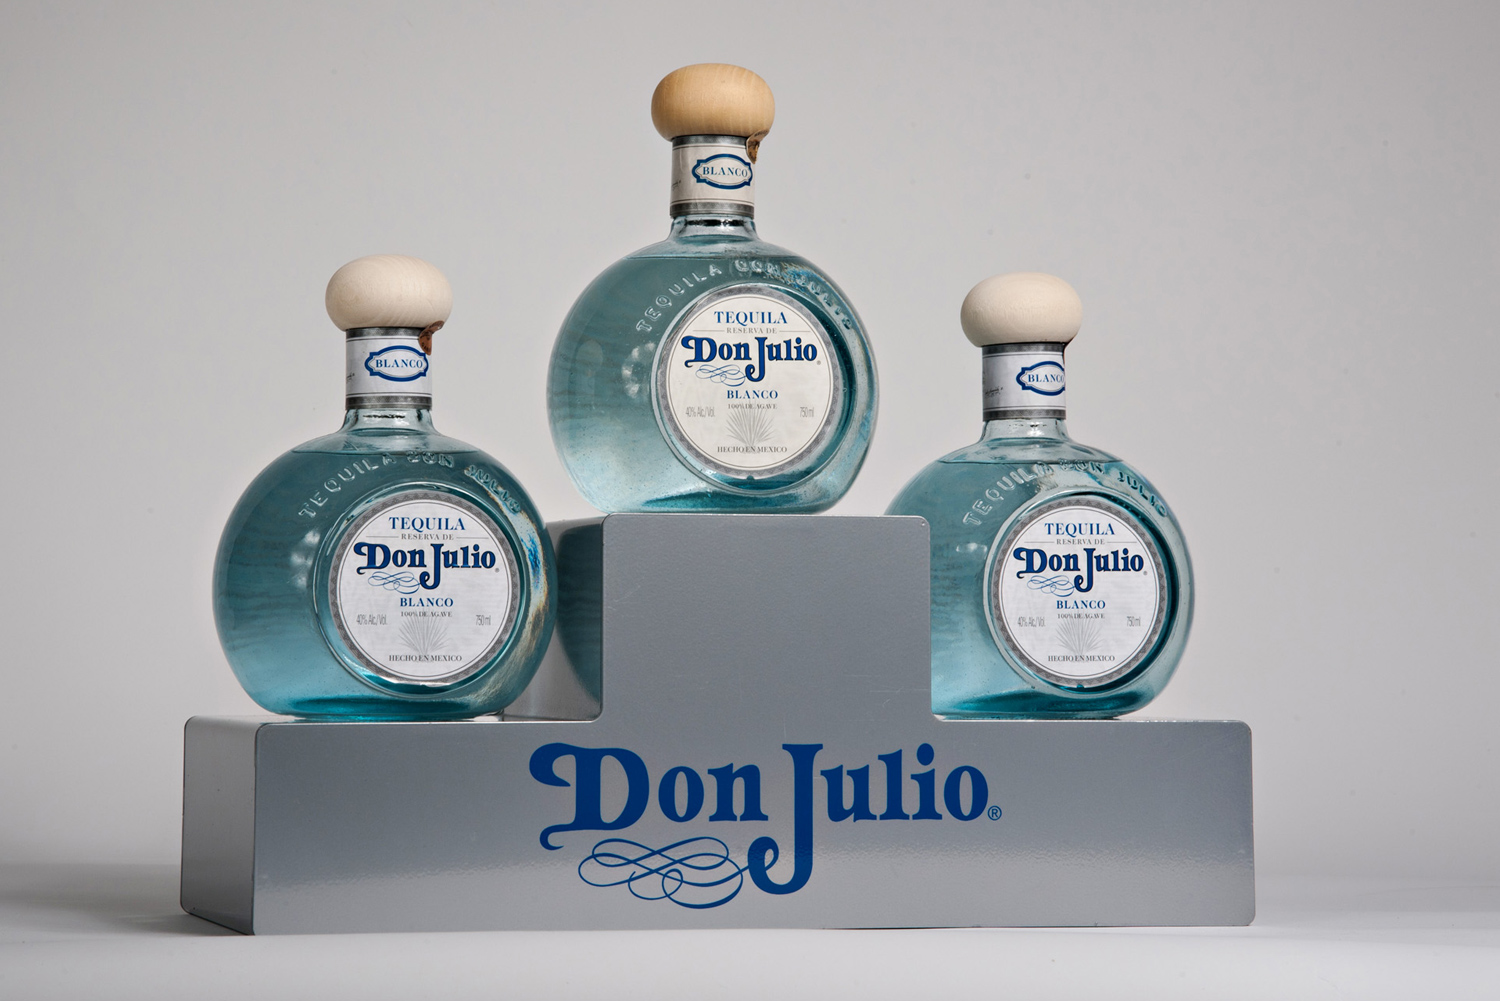 don julio tequila point of purchase display by metaline